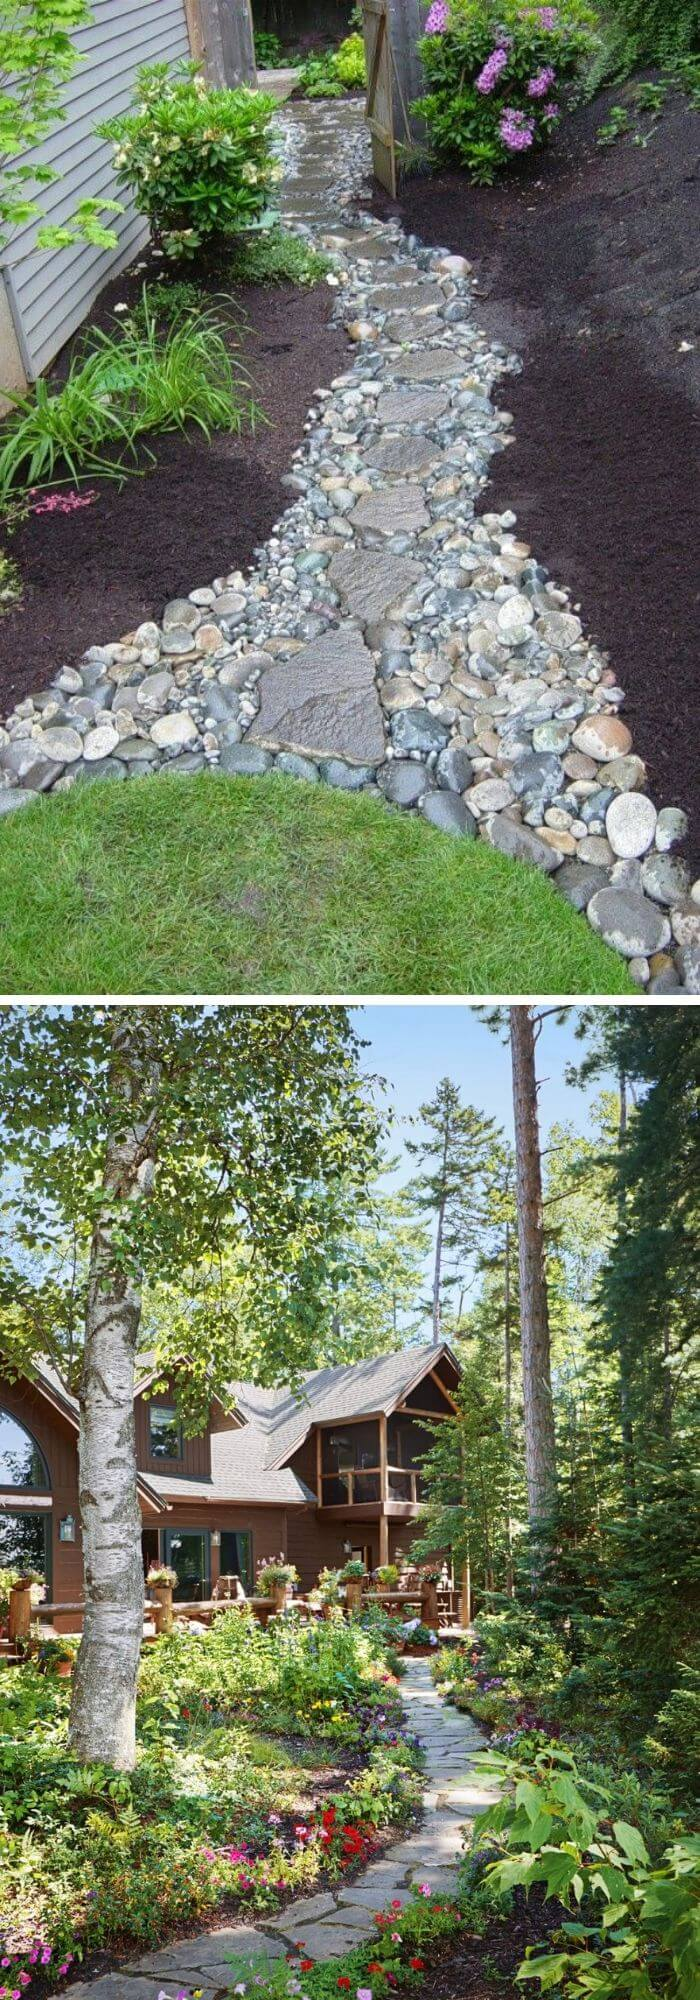 A Backyard with a simple Stone Path